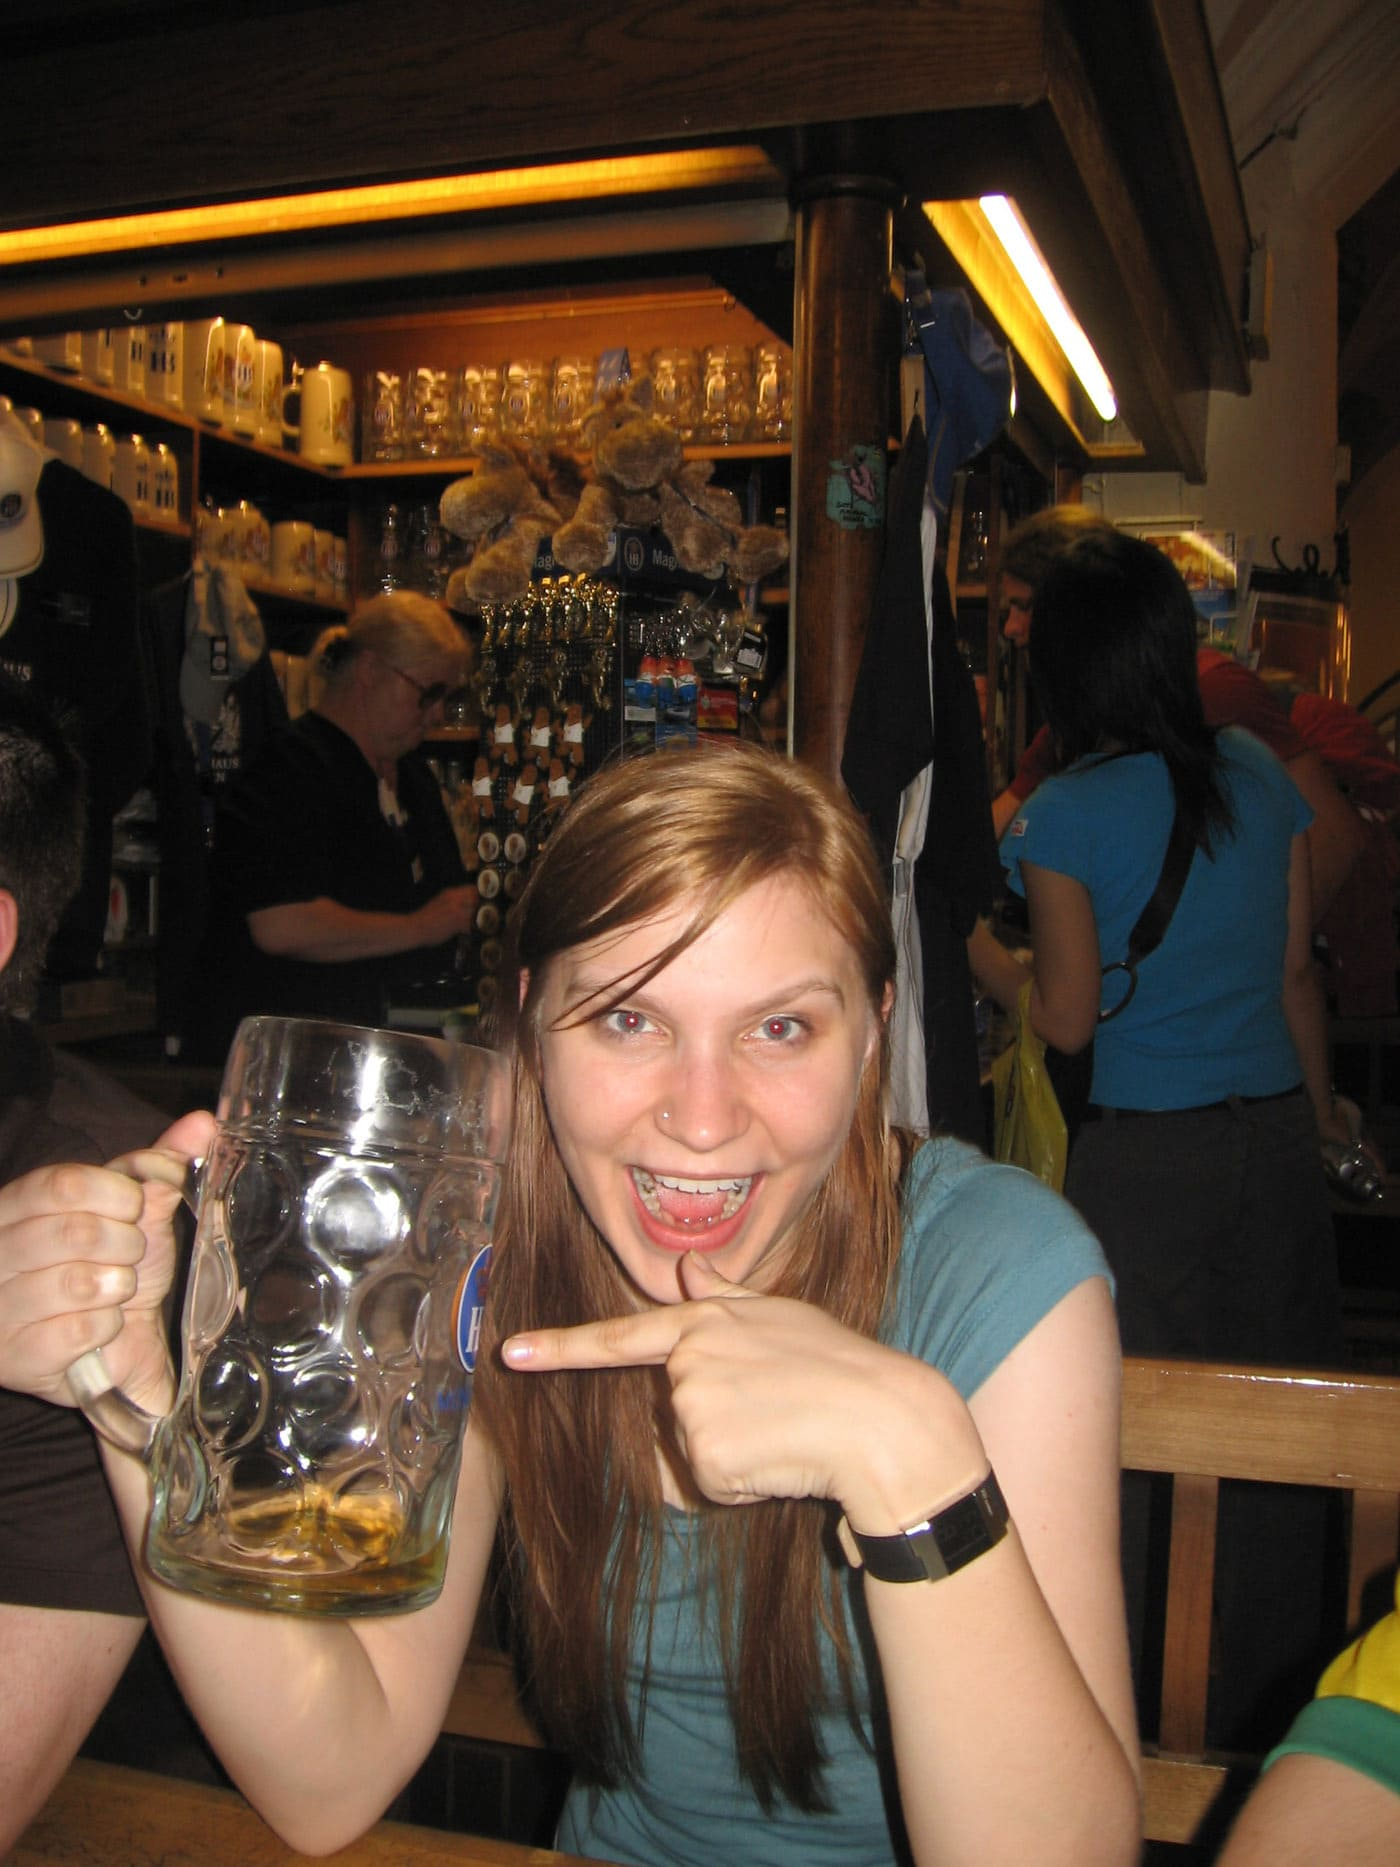 I finished a liter of beer at Hofbrauhaus in Munich, Germany